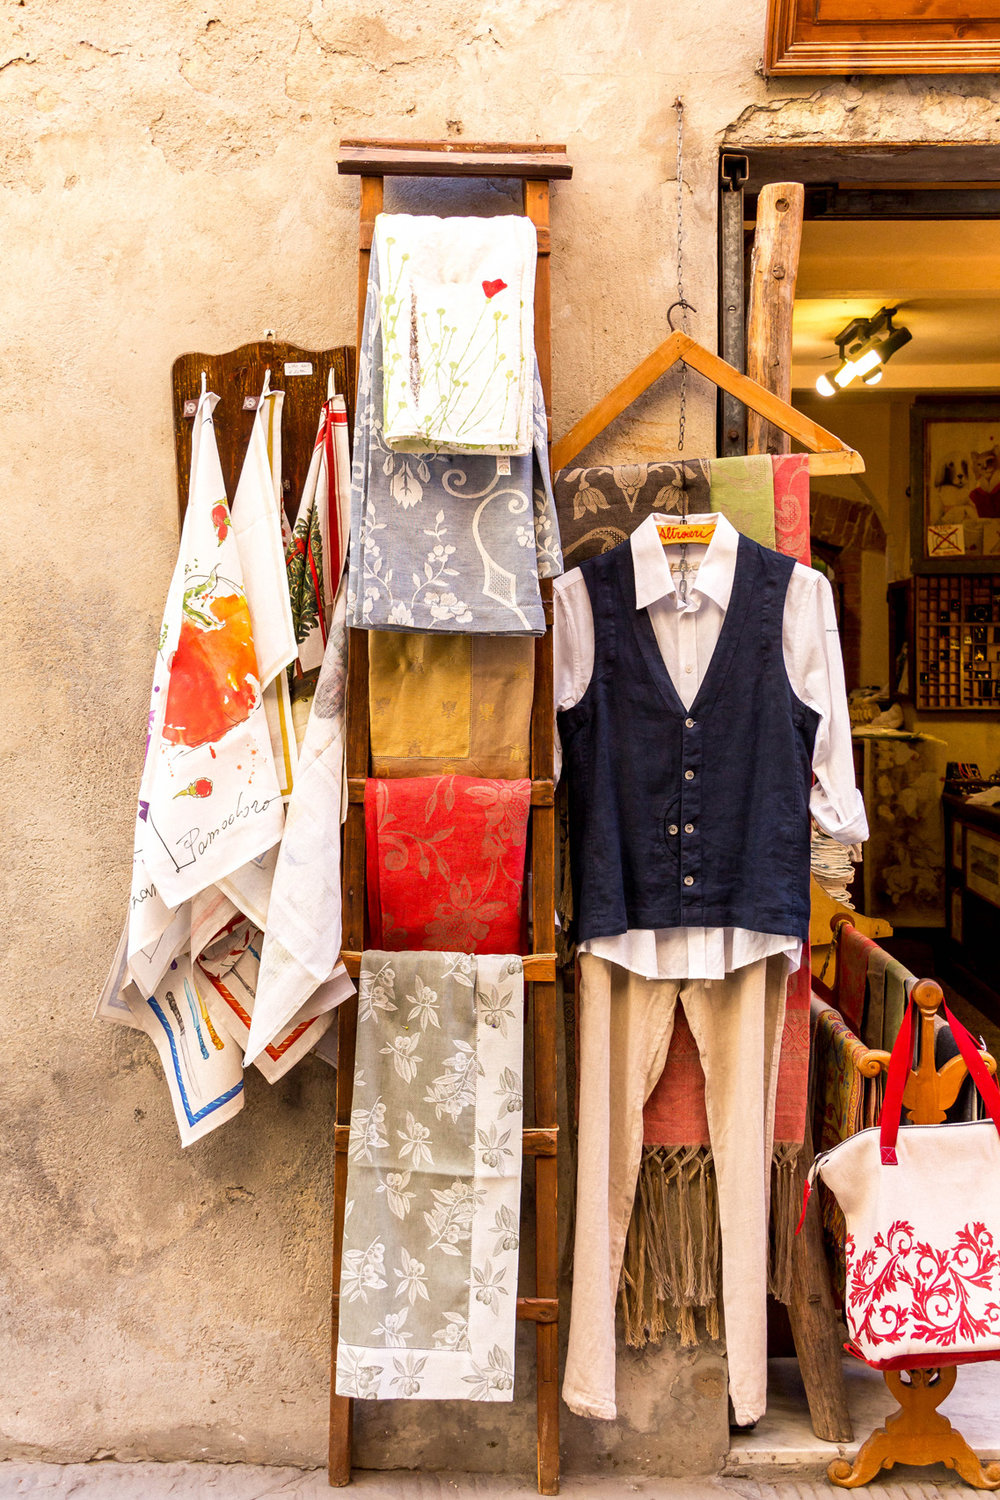 Linen shop in Pienza, Tuscany